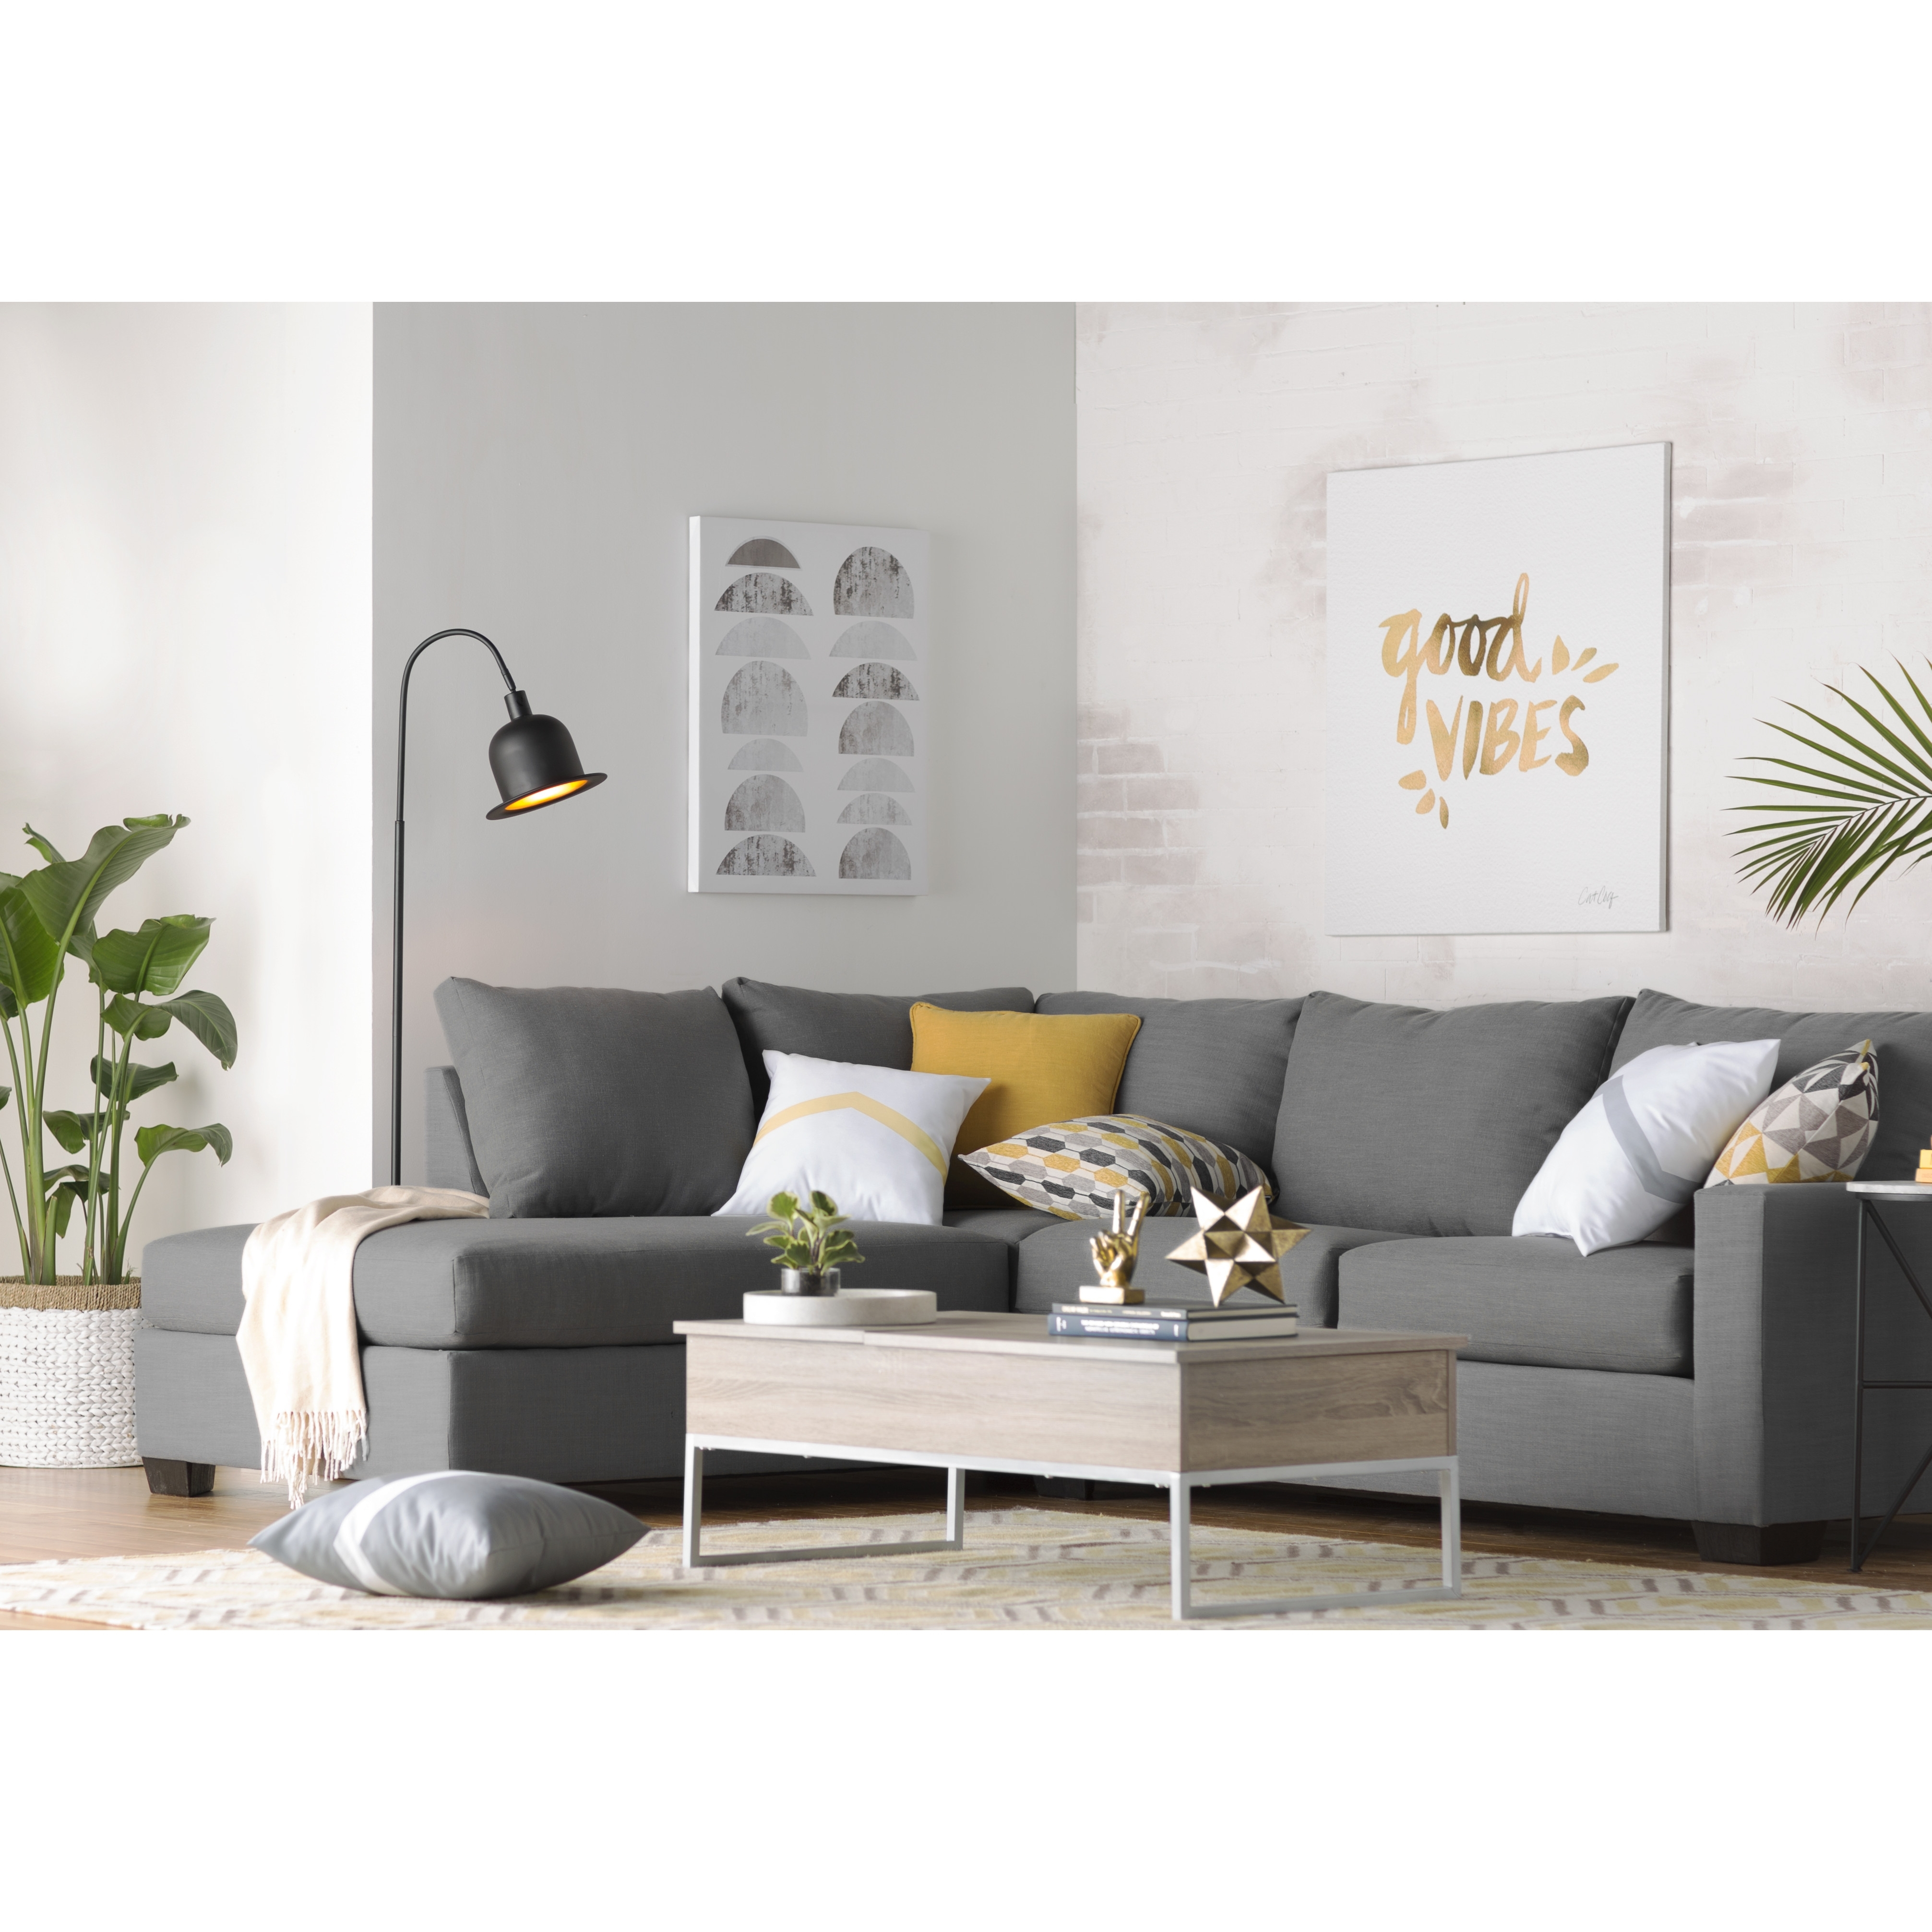 You'll Love The Hannah Sectional At Wayfair - Great Deals On All pertaining to Joss And Main Sectional Sofas